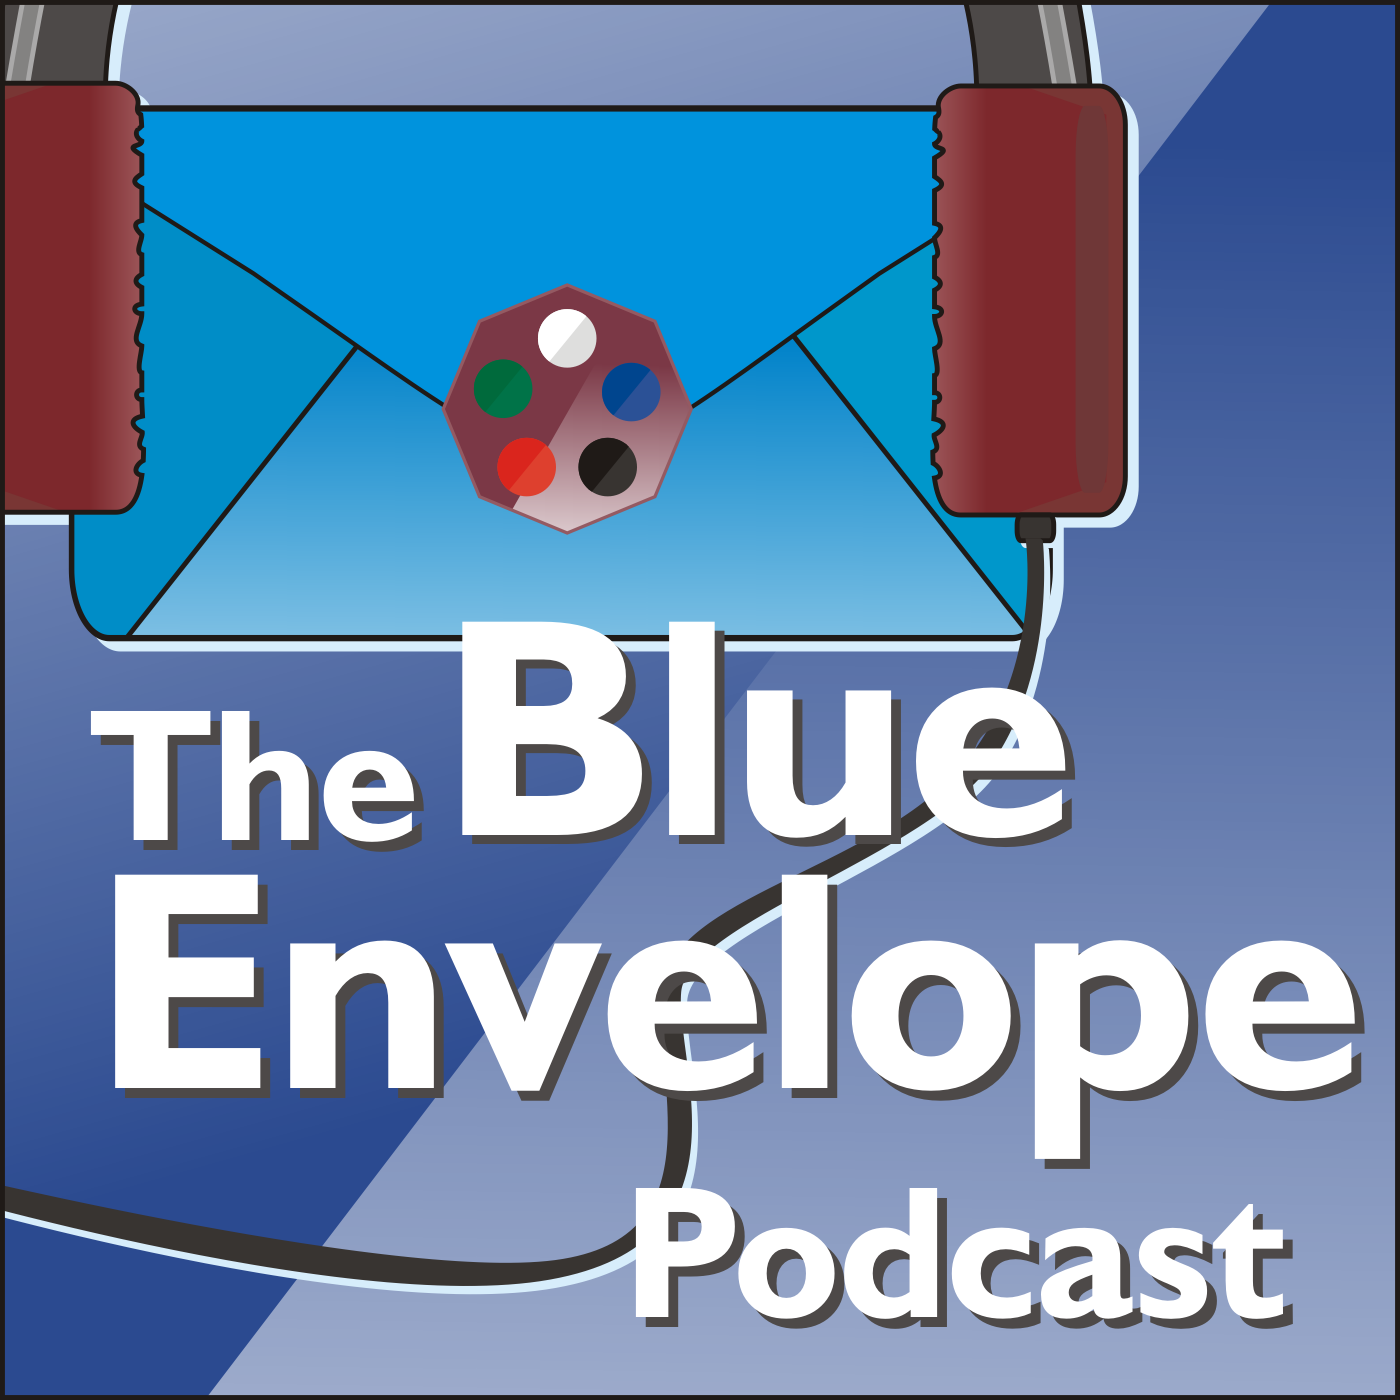 The Blue Envelope Podcast